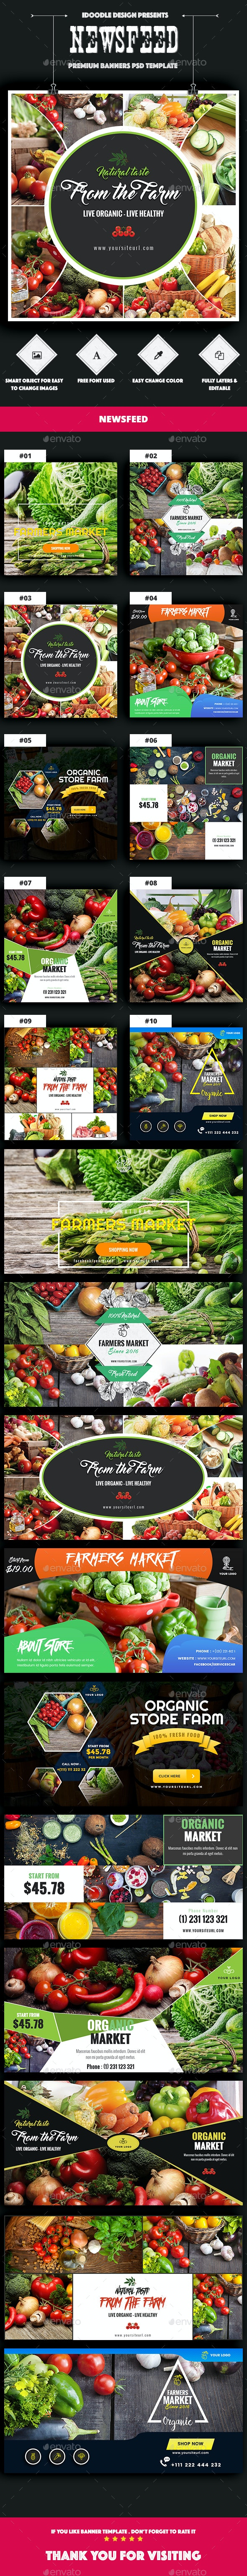 Organic Store, Farm Market, Fresh Food Newsfeed Facebook Ads - 20 PSD [02 Size Each] - Banners & Ads Web Elements